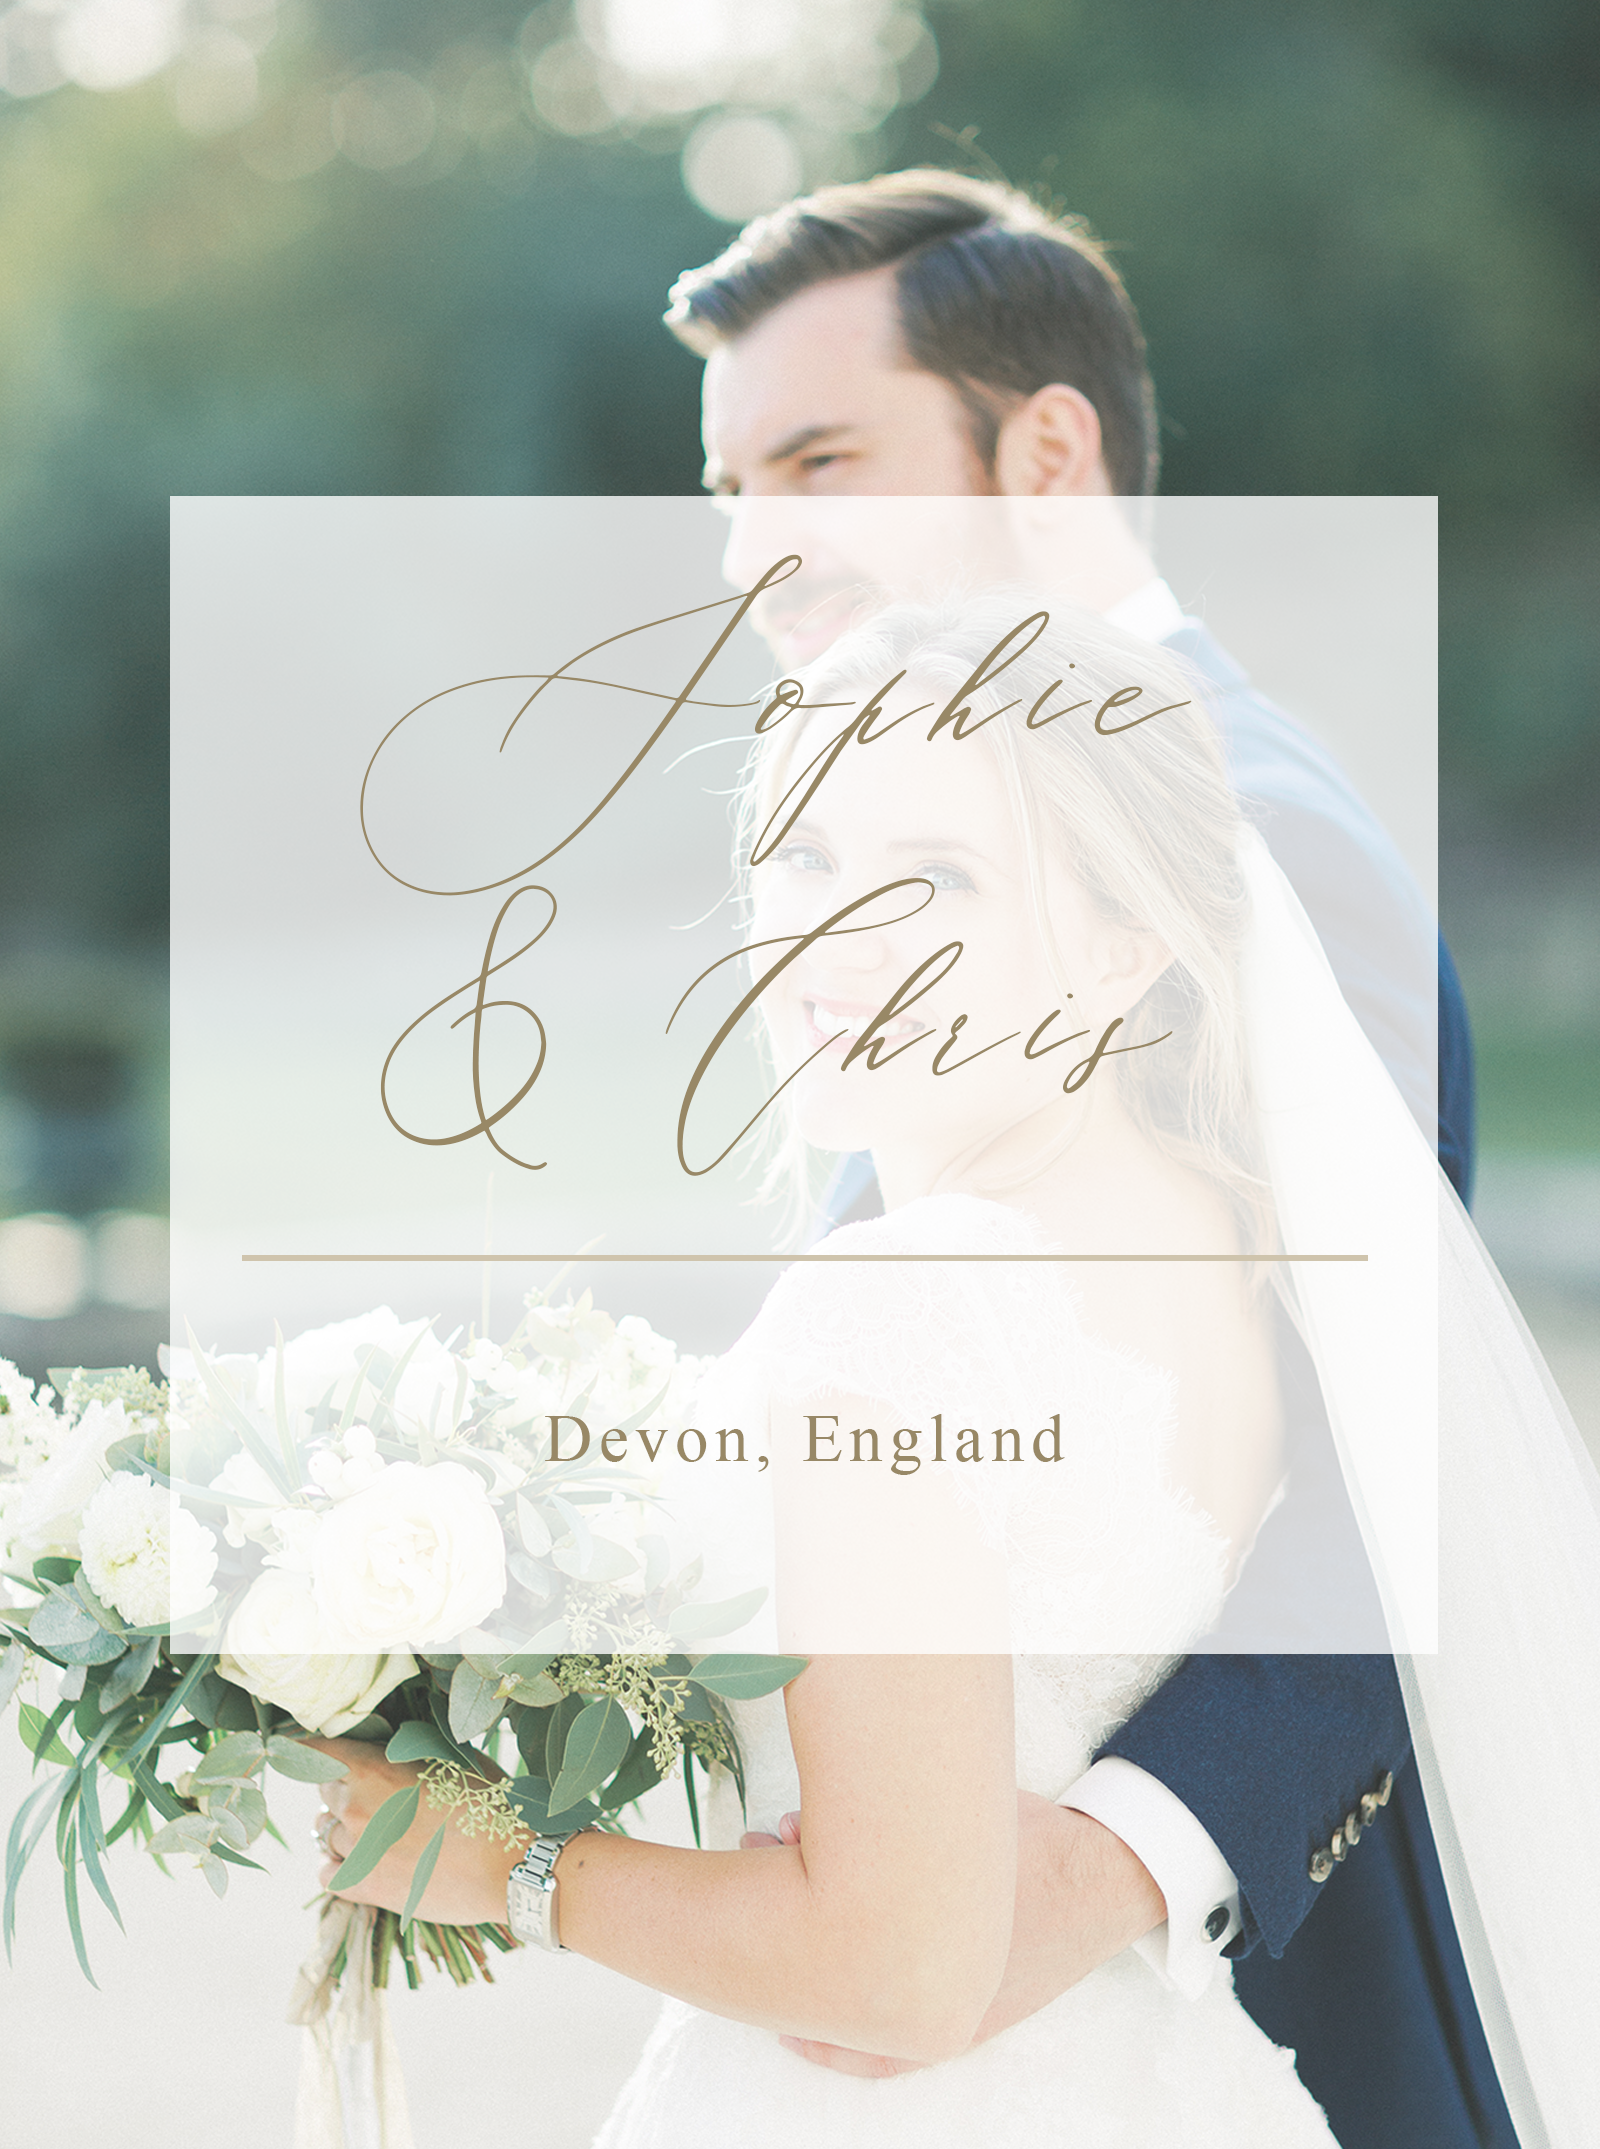 Lily & Sage_Luxury Wedding Planner UK_Sophie & Chris' English Country House Wedding Soft Pale Blue White and Silver Toned Green Neutral Tones Overseas Singapore Pynes House_Andrew & Ada Photography 248.png